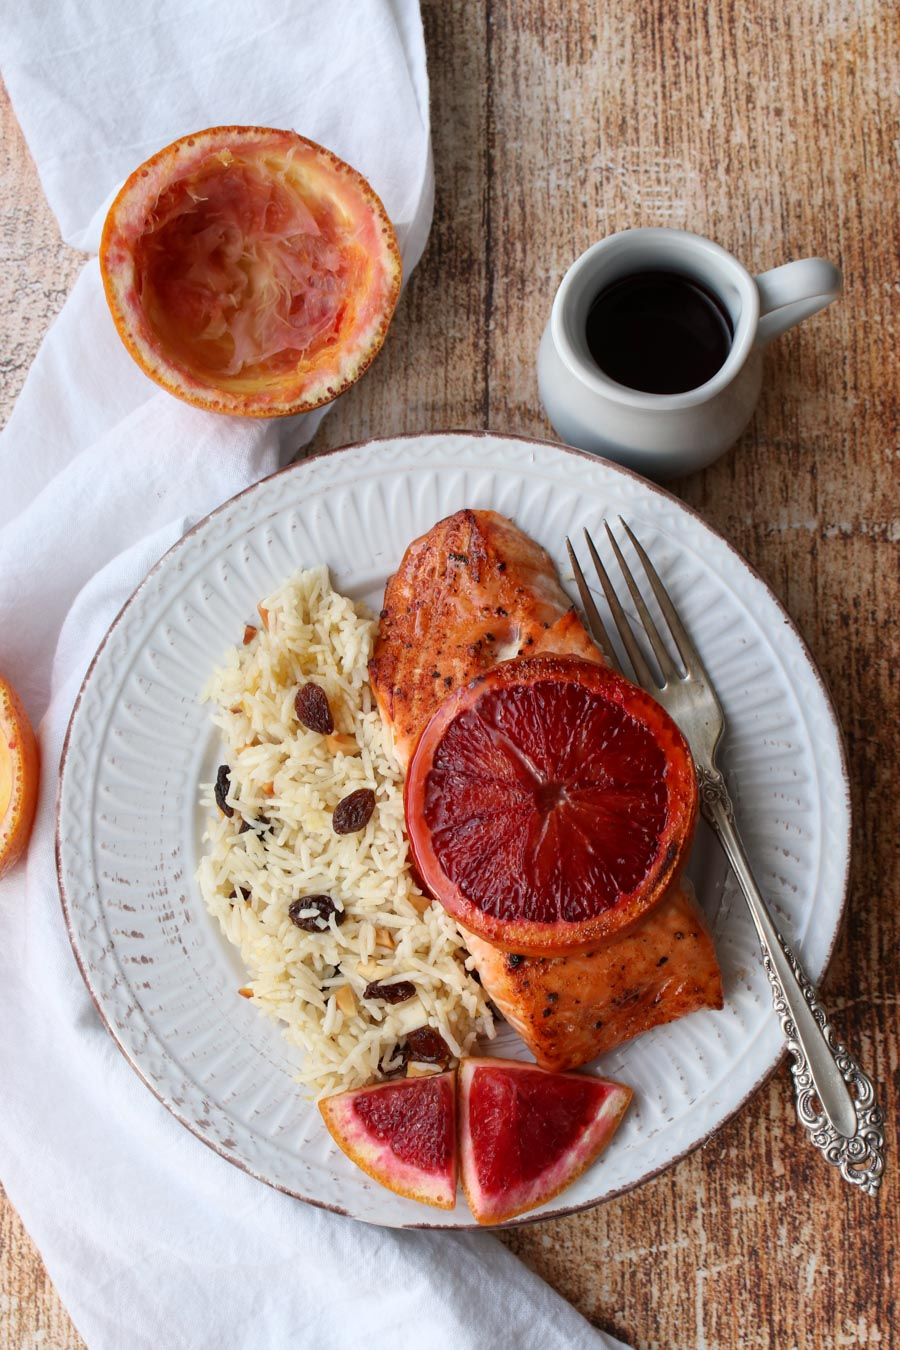 plate of salmon with orange slice on top and side of rice